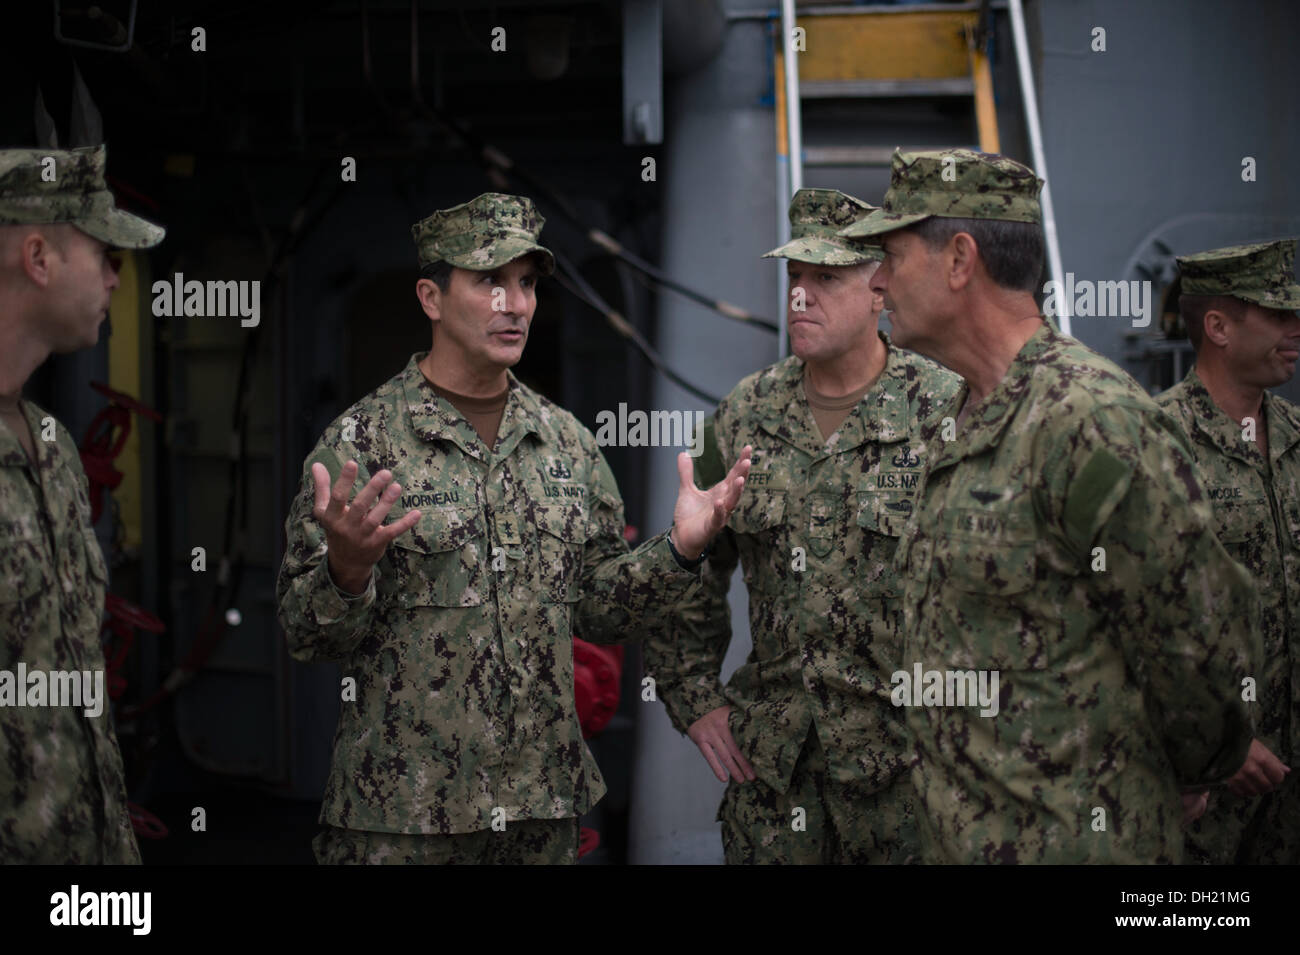 VIRGINIA BEACH, Va. (Oct. 23, 2013) Rear Adm. Frank Morneau, commander Navy Expeditionary Combat Command (NECC) speaks with Vice Adm. William Moran, Chief of Naval Personnel while on a tour of various Mobile Diving and Salvage Unit 2 (MDSU 2) displays. MD - Stock Image